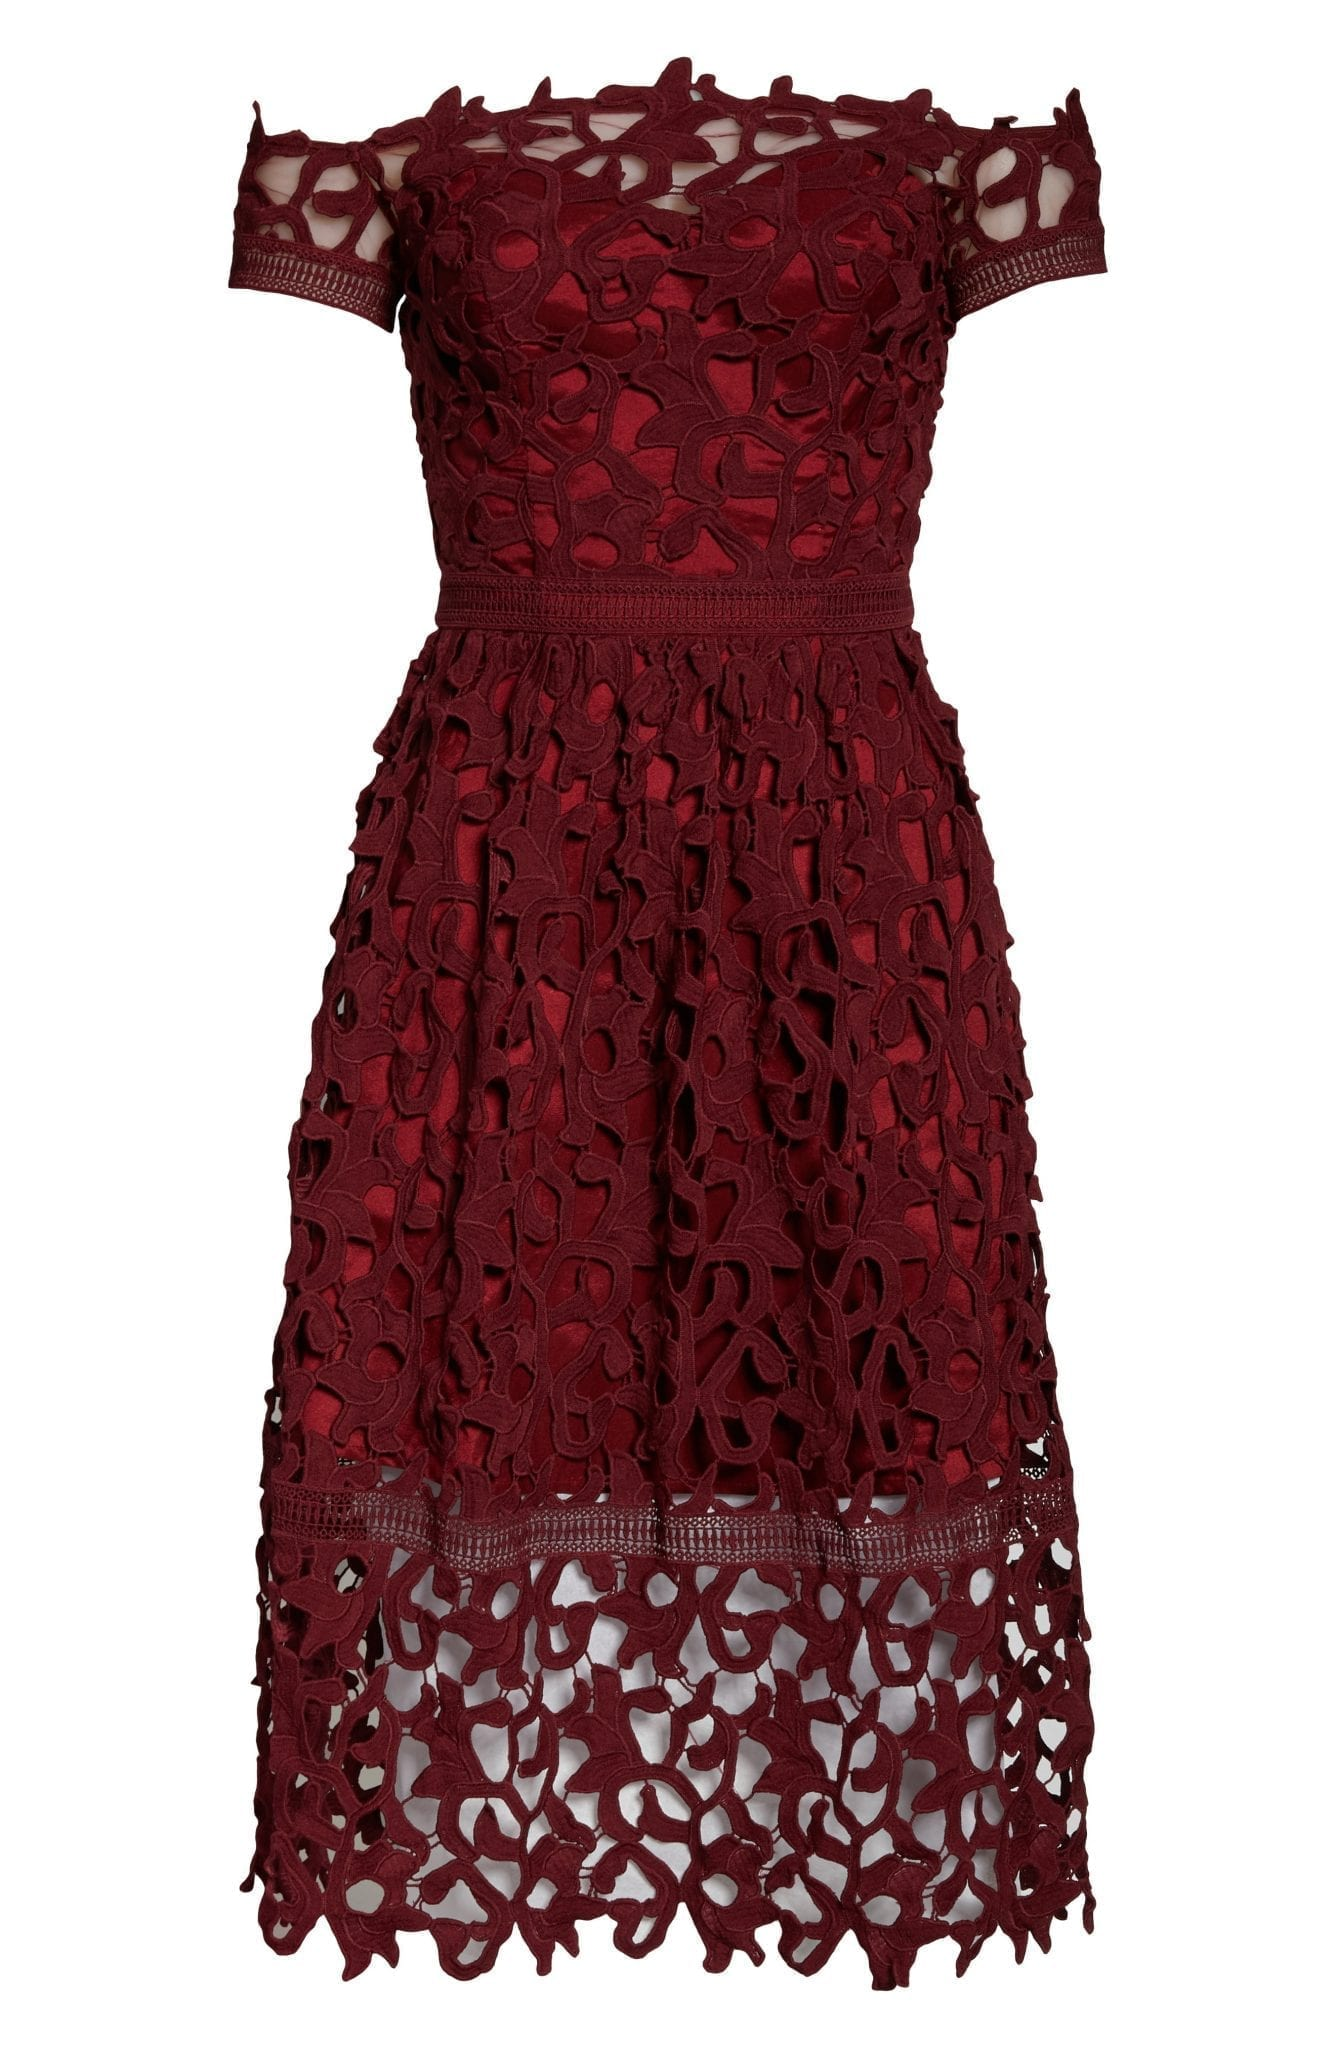 CHI CHI LONDON Off the Shoulder Lace Cocktail Dress